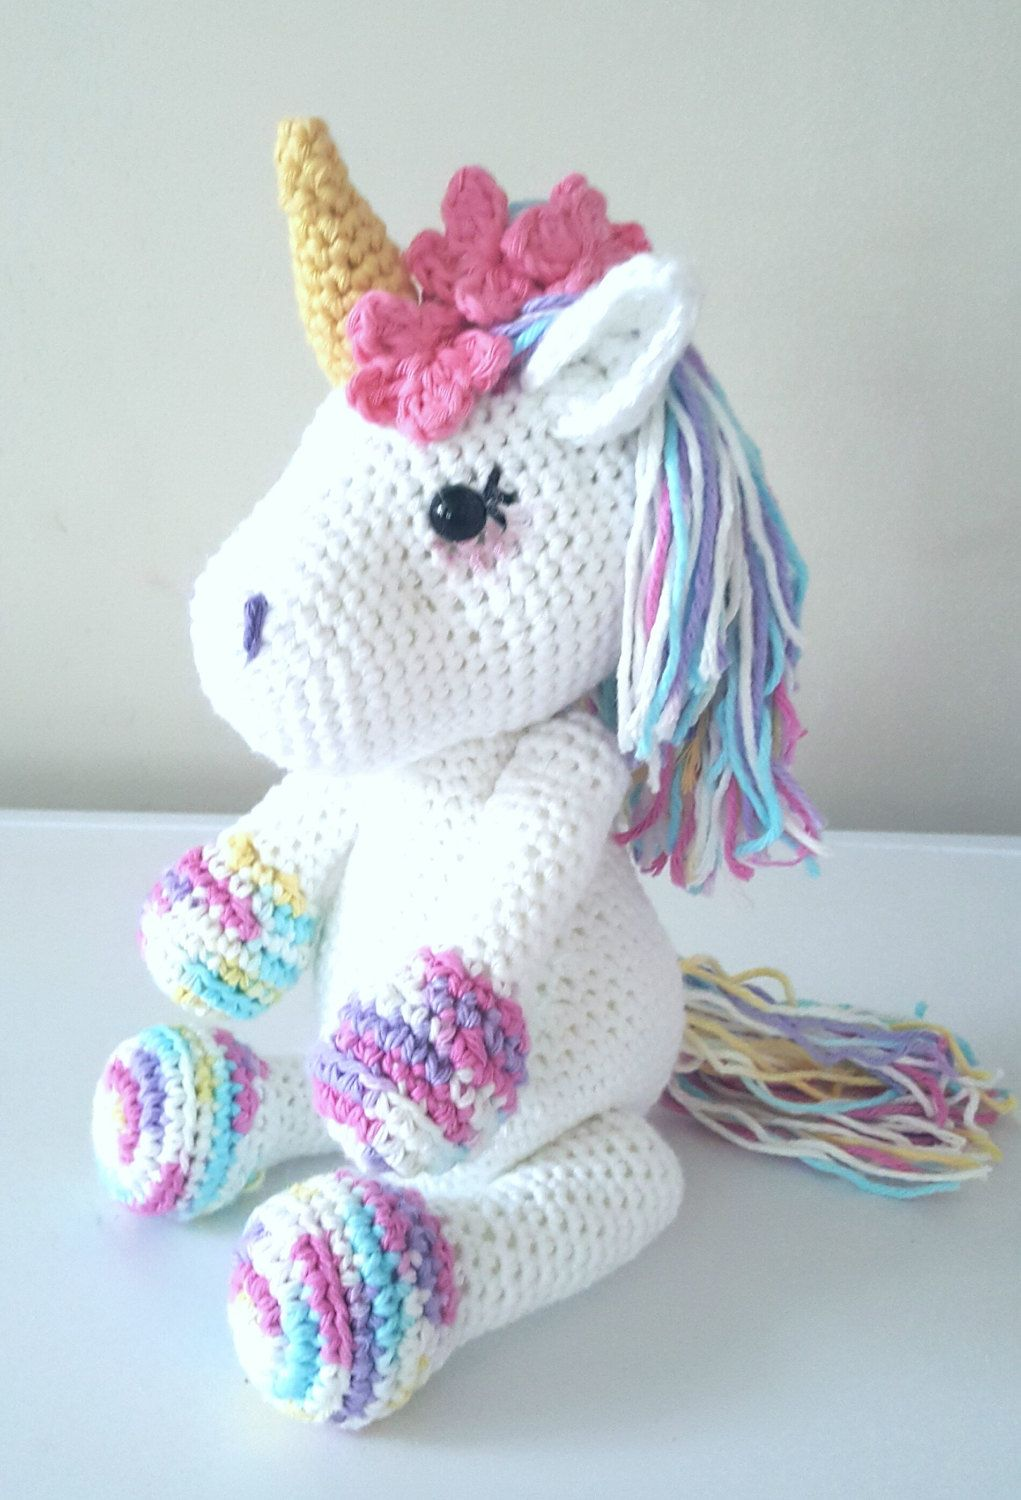 Baby unicorn amigurumi pattern - Amigurumi Today | 1500x1021